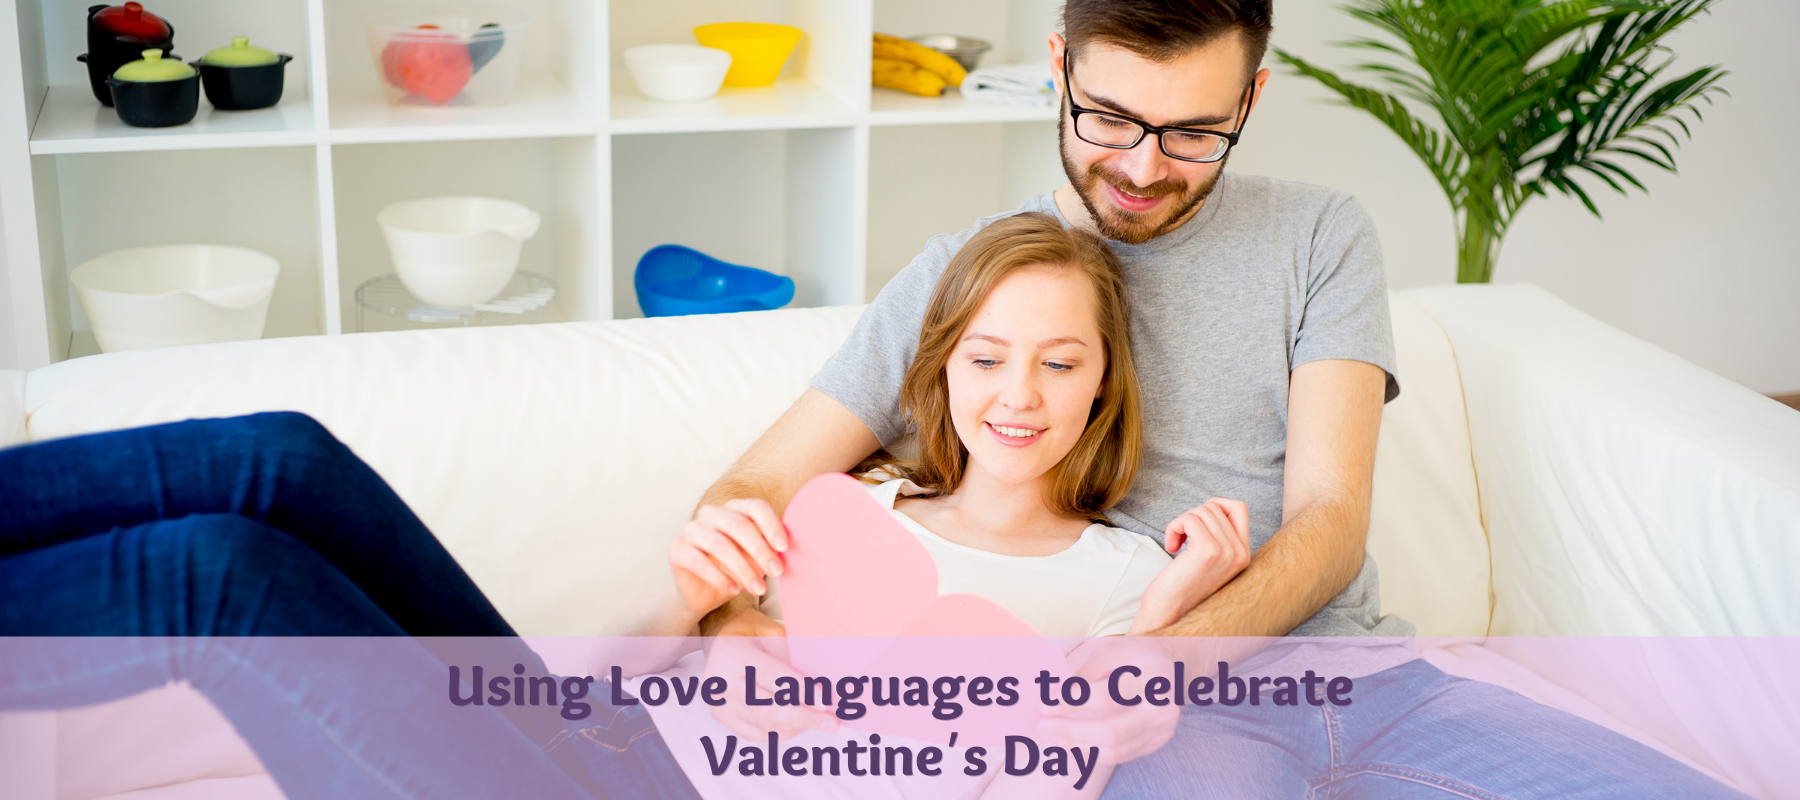 Using Love Languages to Celebrate Valentine's Day